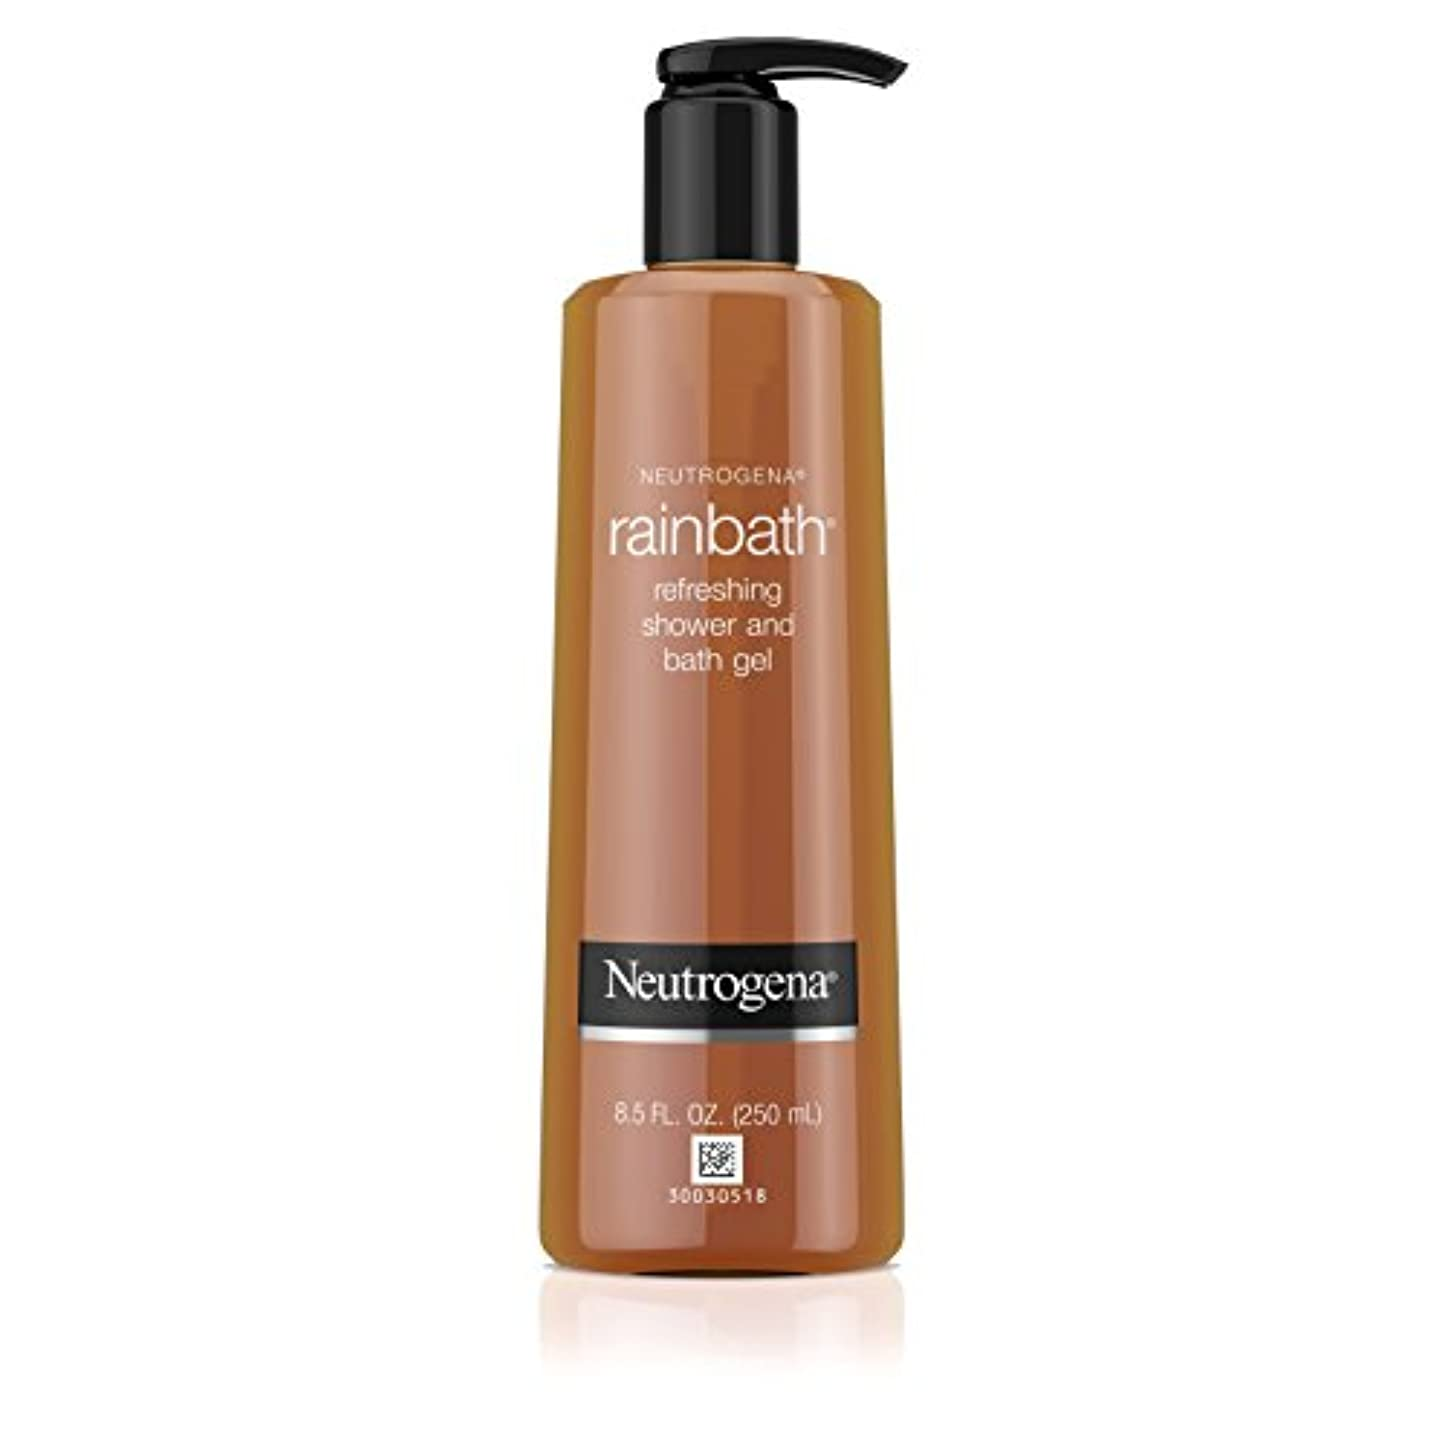 遠近法香港佐賀Neutrogena Rainbath Refreshing Shower And Bath Gel (Body Wash), 250ml